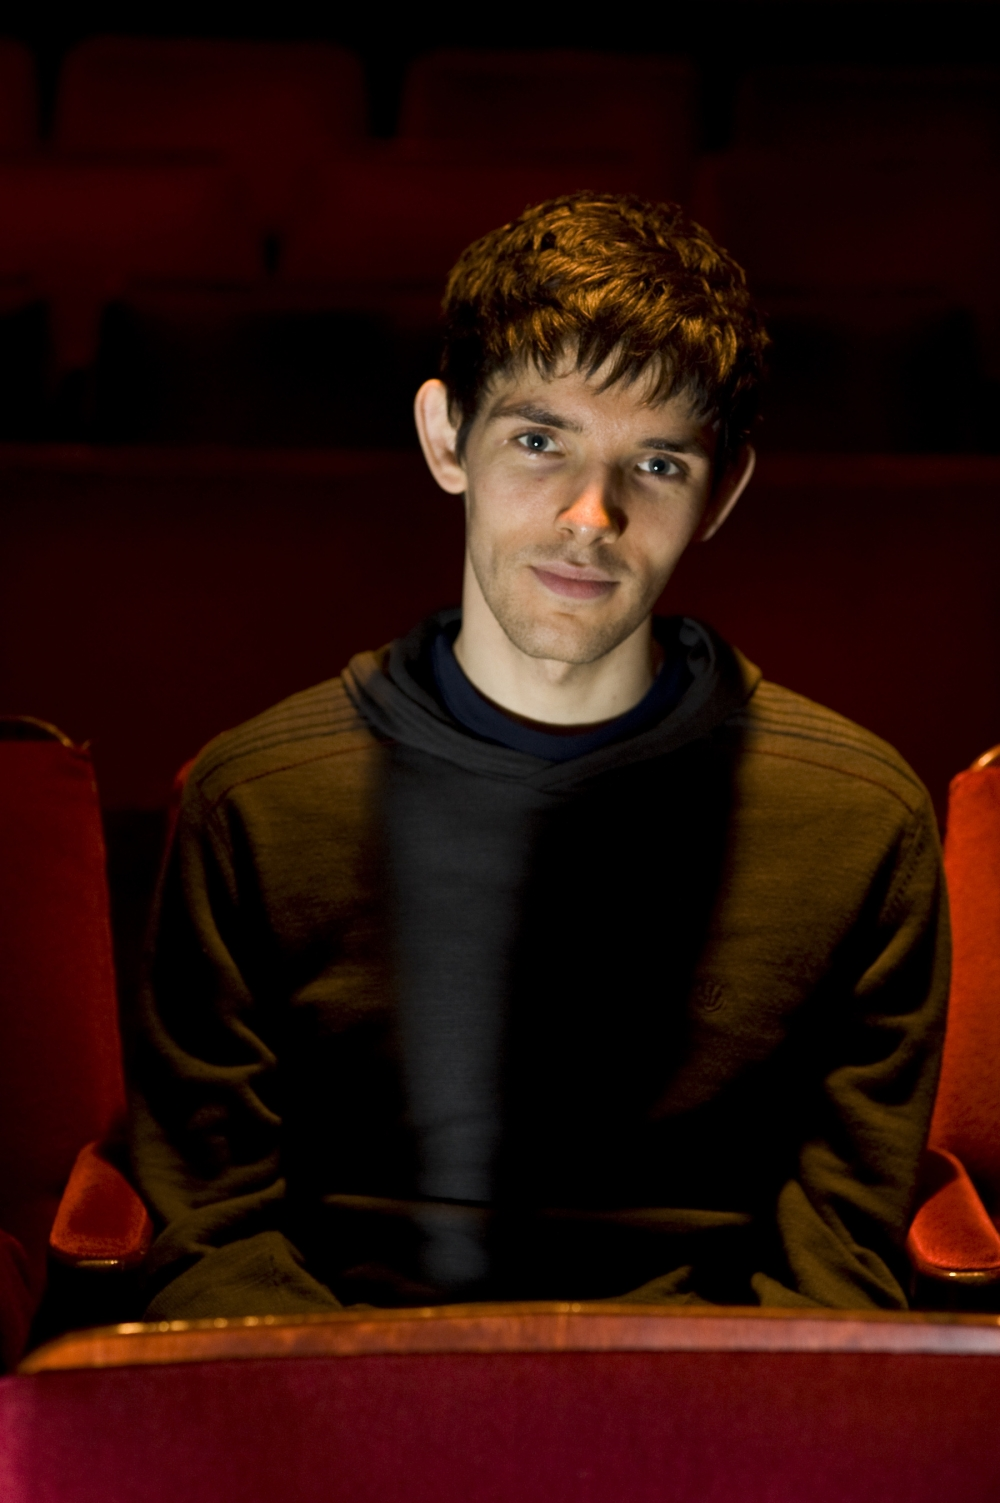 colin morgan filmscolin morgan sherlock, colin morgan vk, colin morgan 2017, colin morgan and katie mcgrath, colin morgan wiki, colin morgan gif, colin morgan sherrinford, colin morgan films, colin morgan wikipedia, colin morgan facebook, colin morgan the fall, colin morgan interview, colin morgan doctor who, colin morgan merlin, colin morgan gif hunt, colin morgan биография, colin morgan height, colin morgan ears, colin morgan biography, colin morgan foto